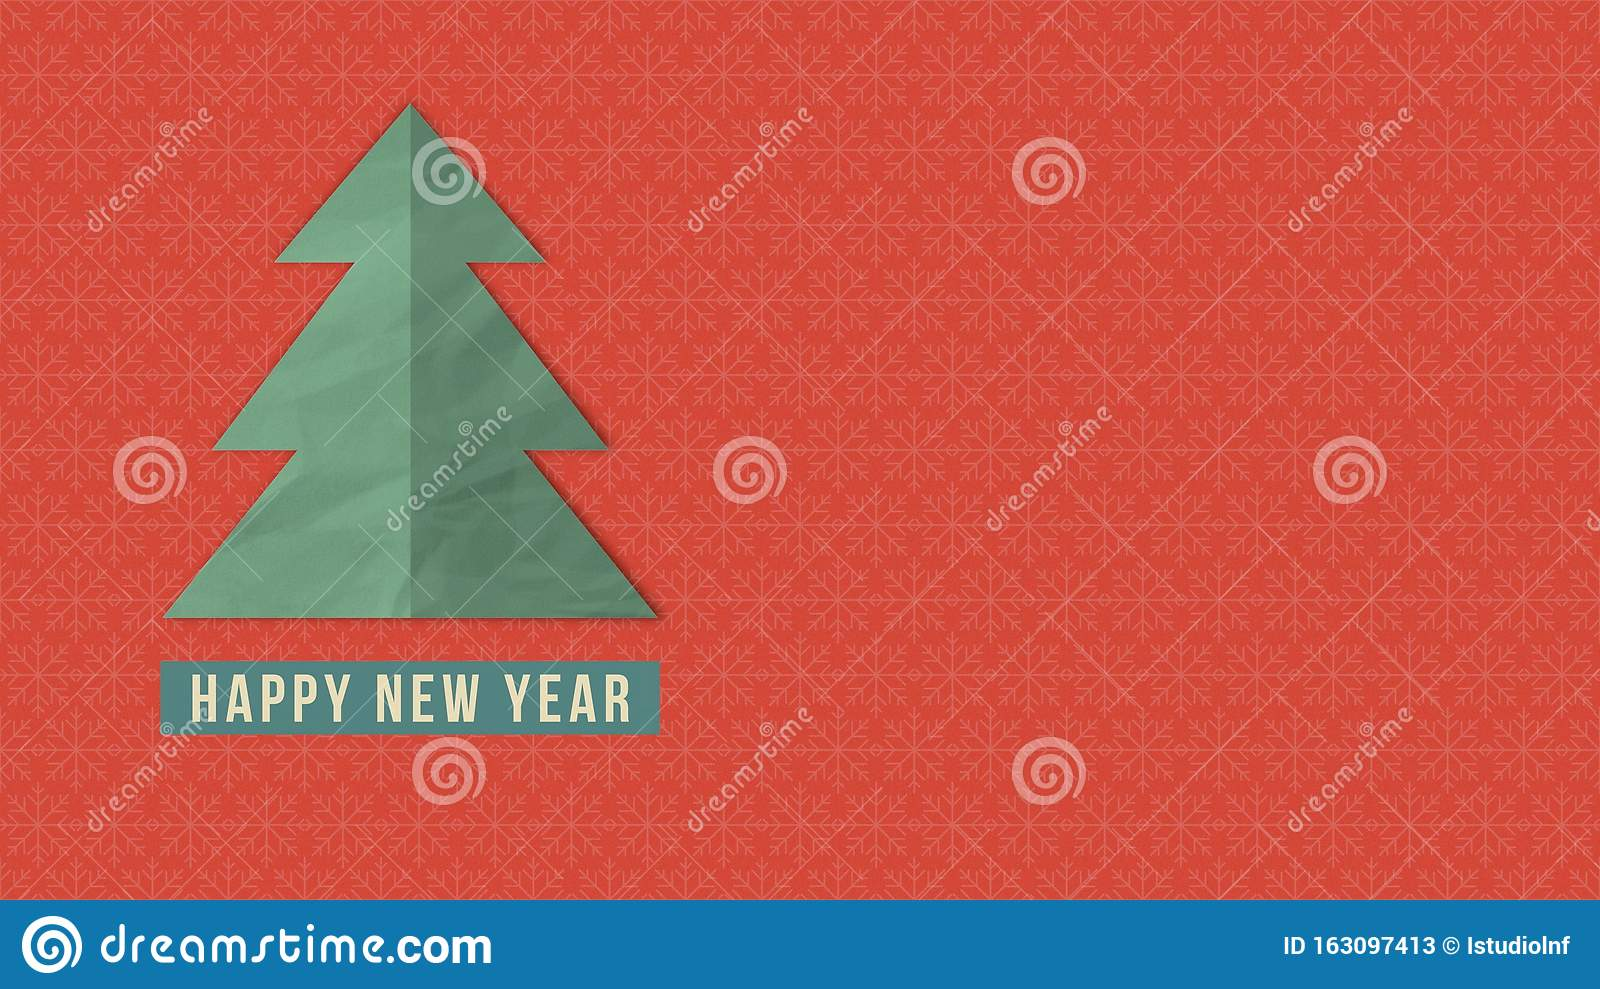 Happy New Year Text White Christmas Tree On Red Background Stock Illustration Illustration Of Merry Focus 163097413